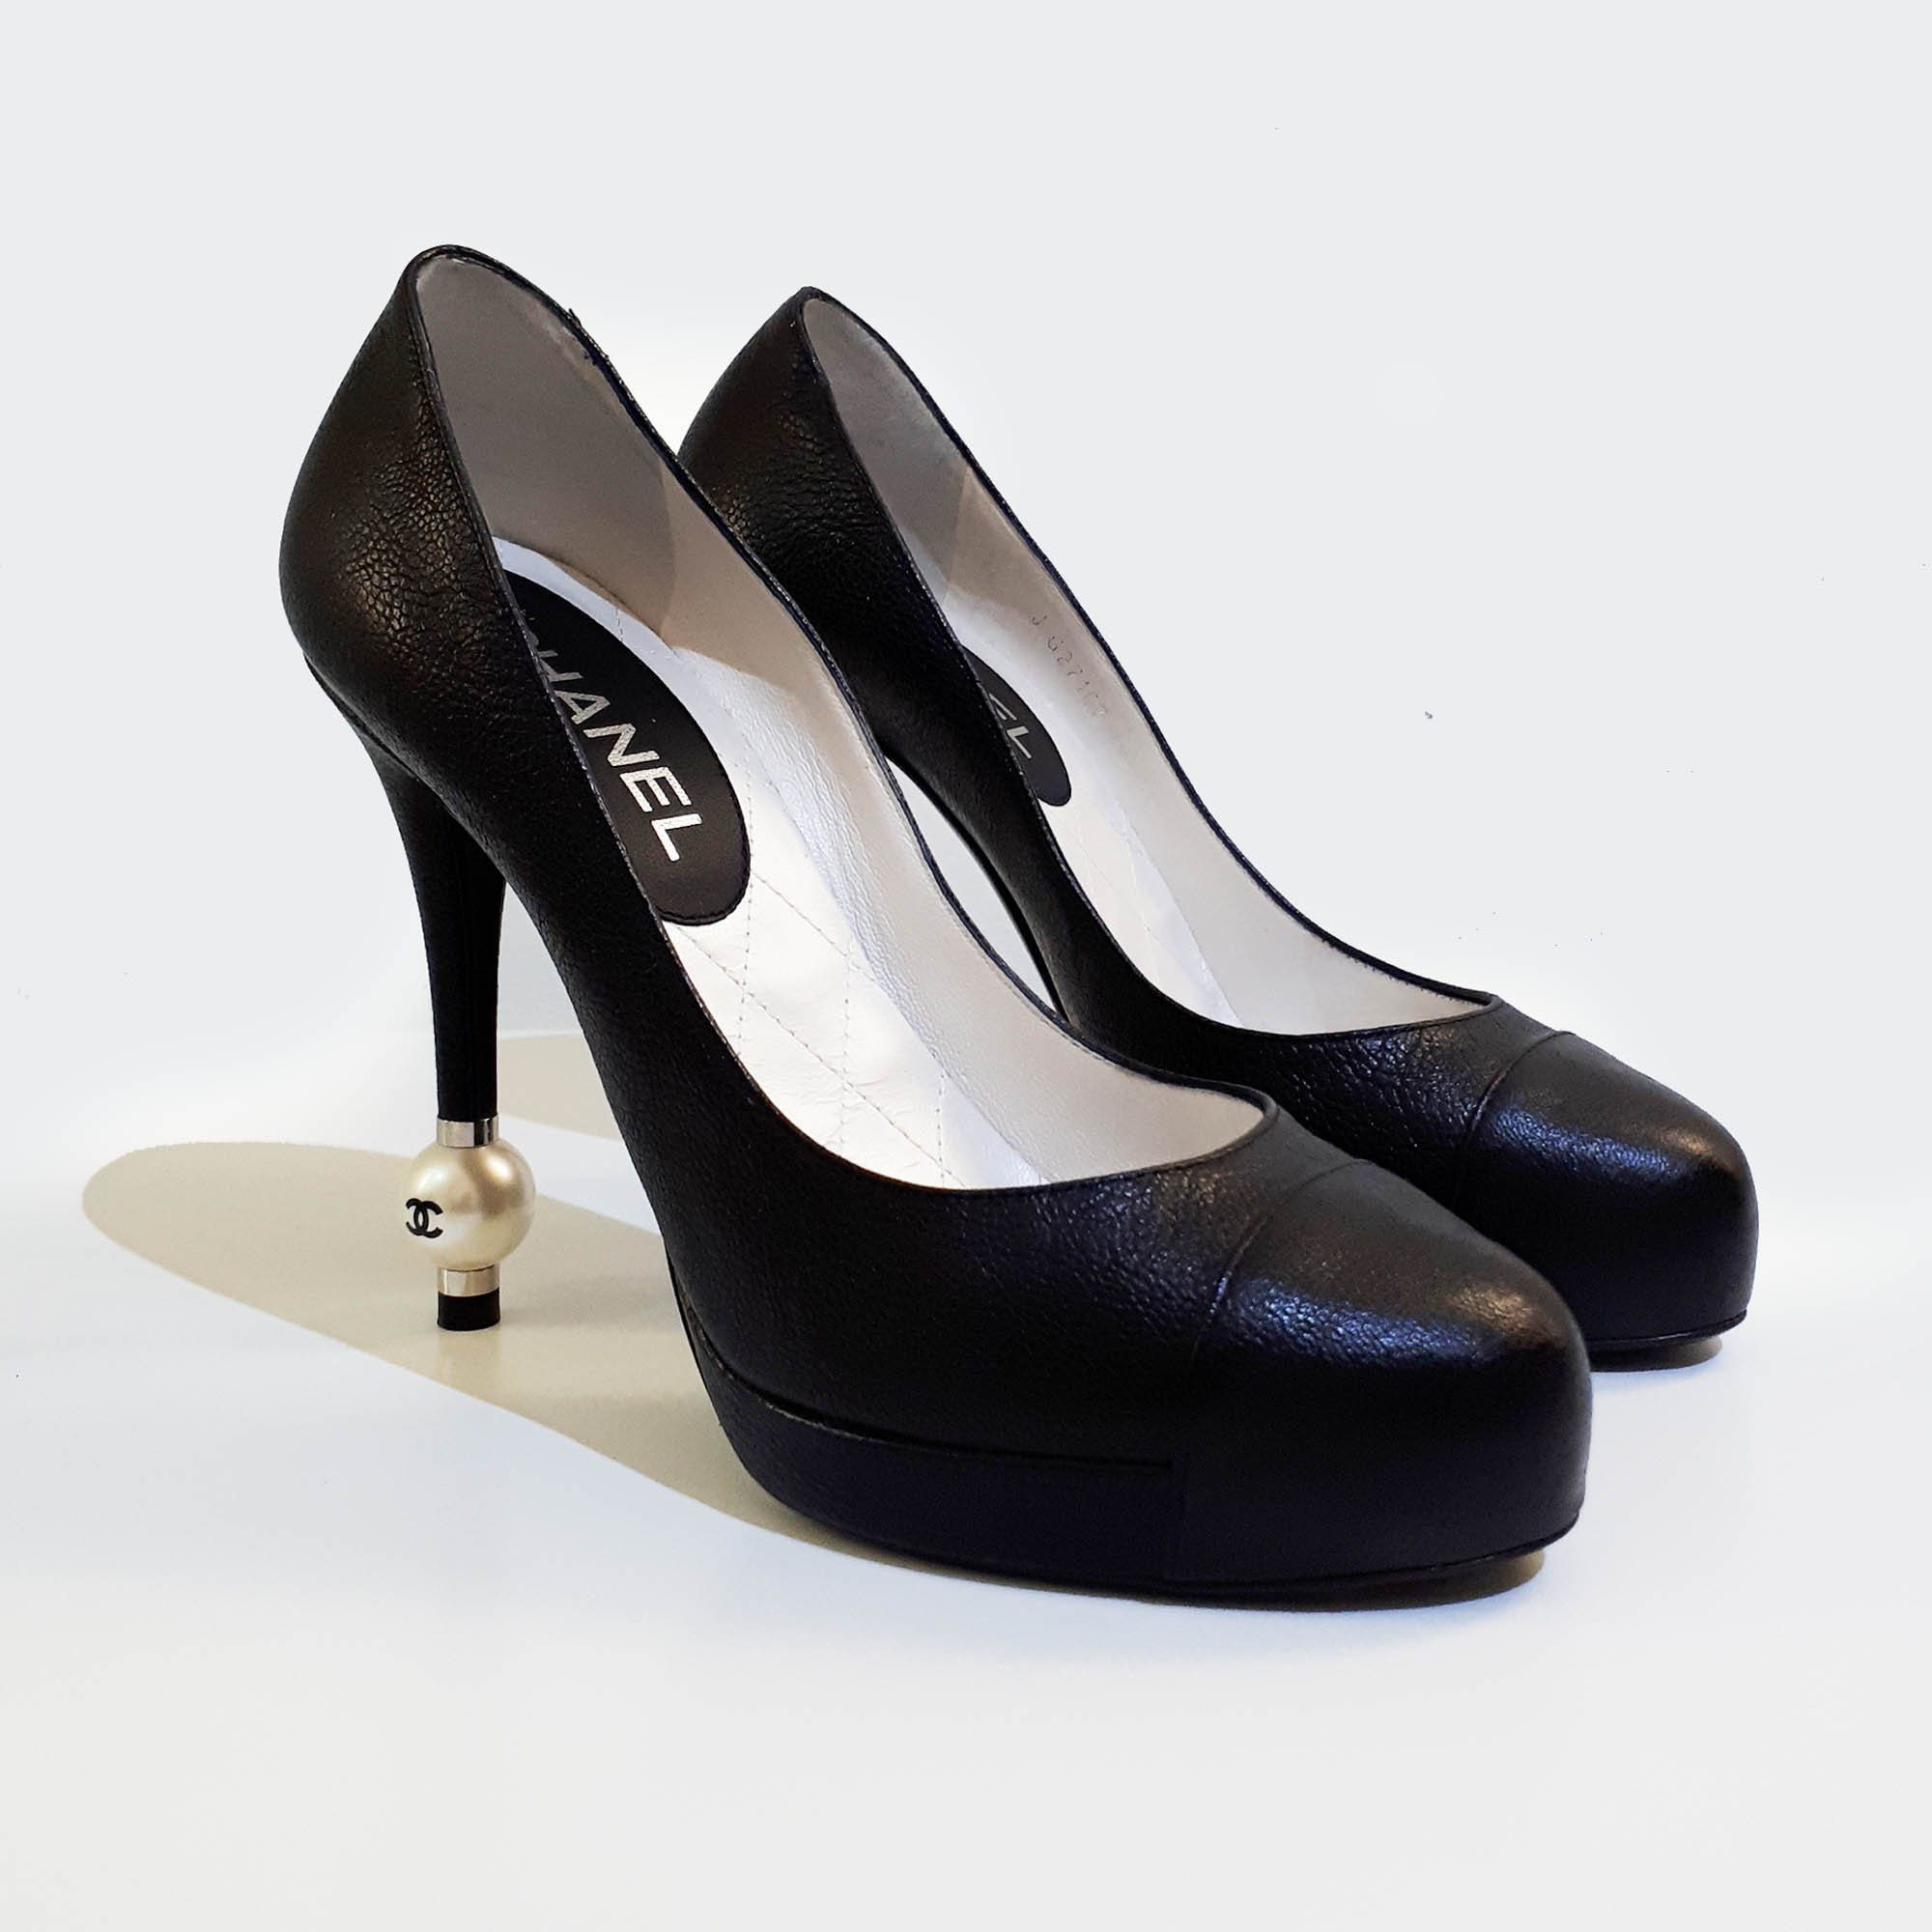 Chanel Round Cap-Toe Leather Pumps